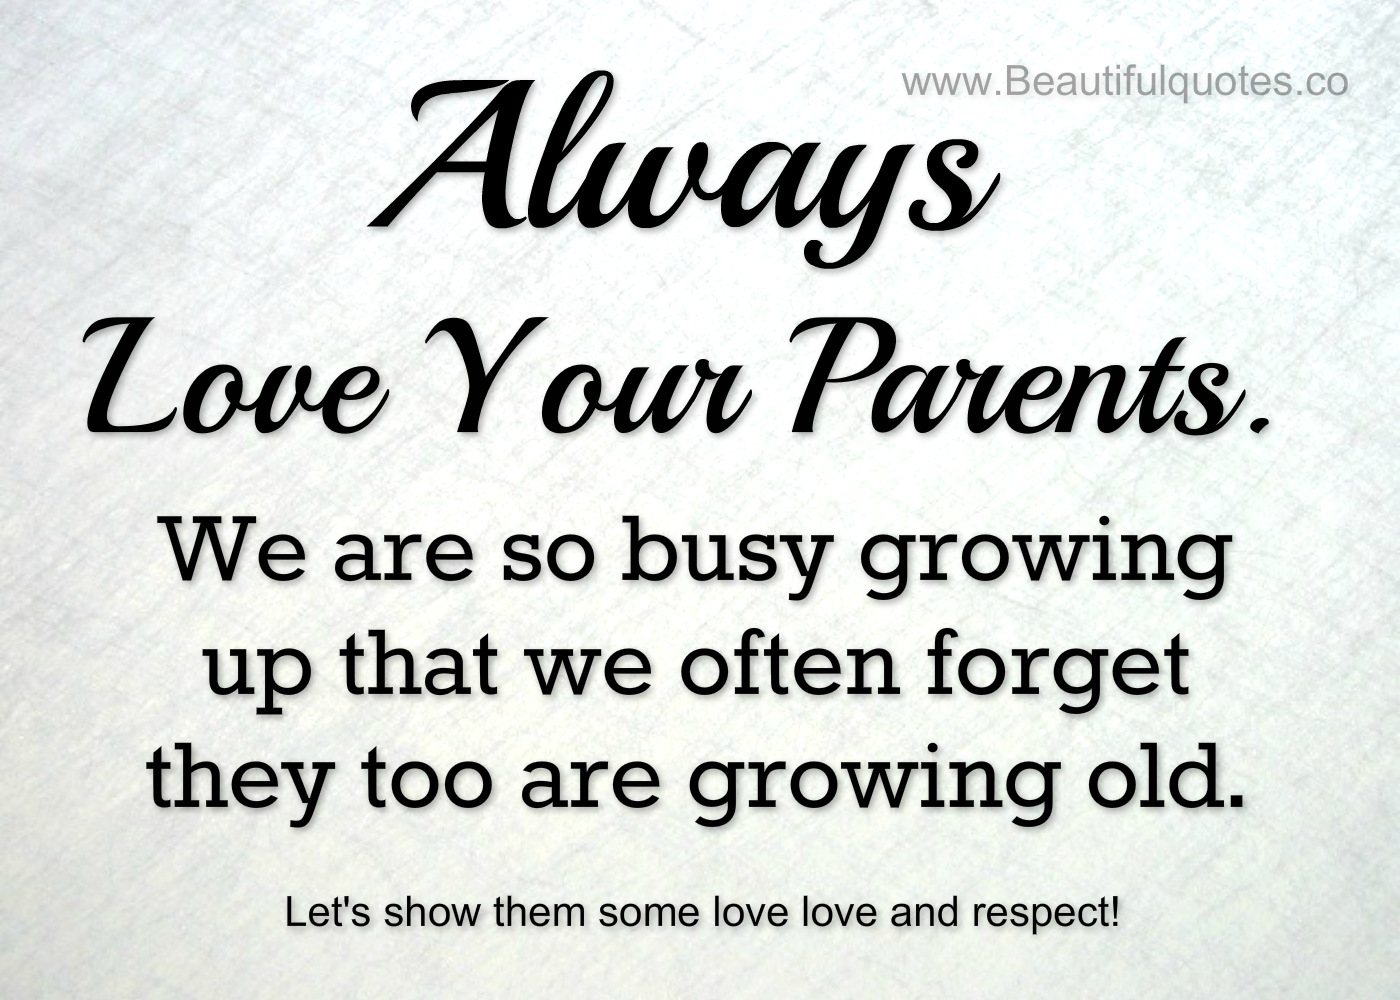 Beautiful Quotes About Love Beautiful Quotes Always Love Your Parents